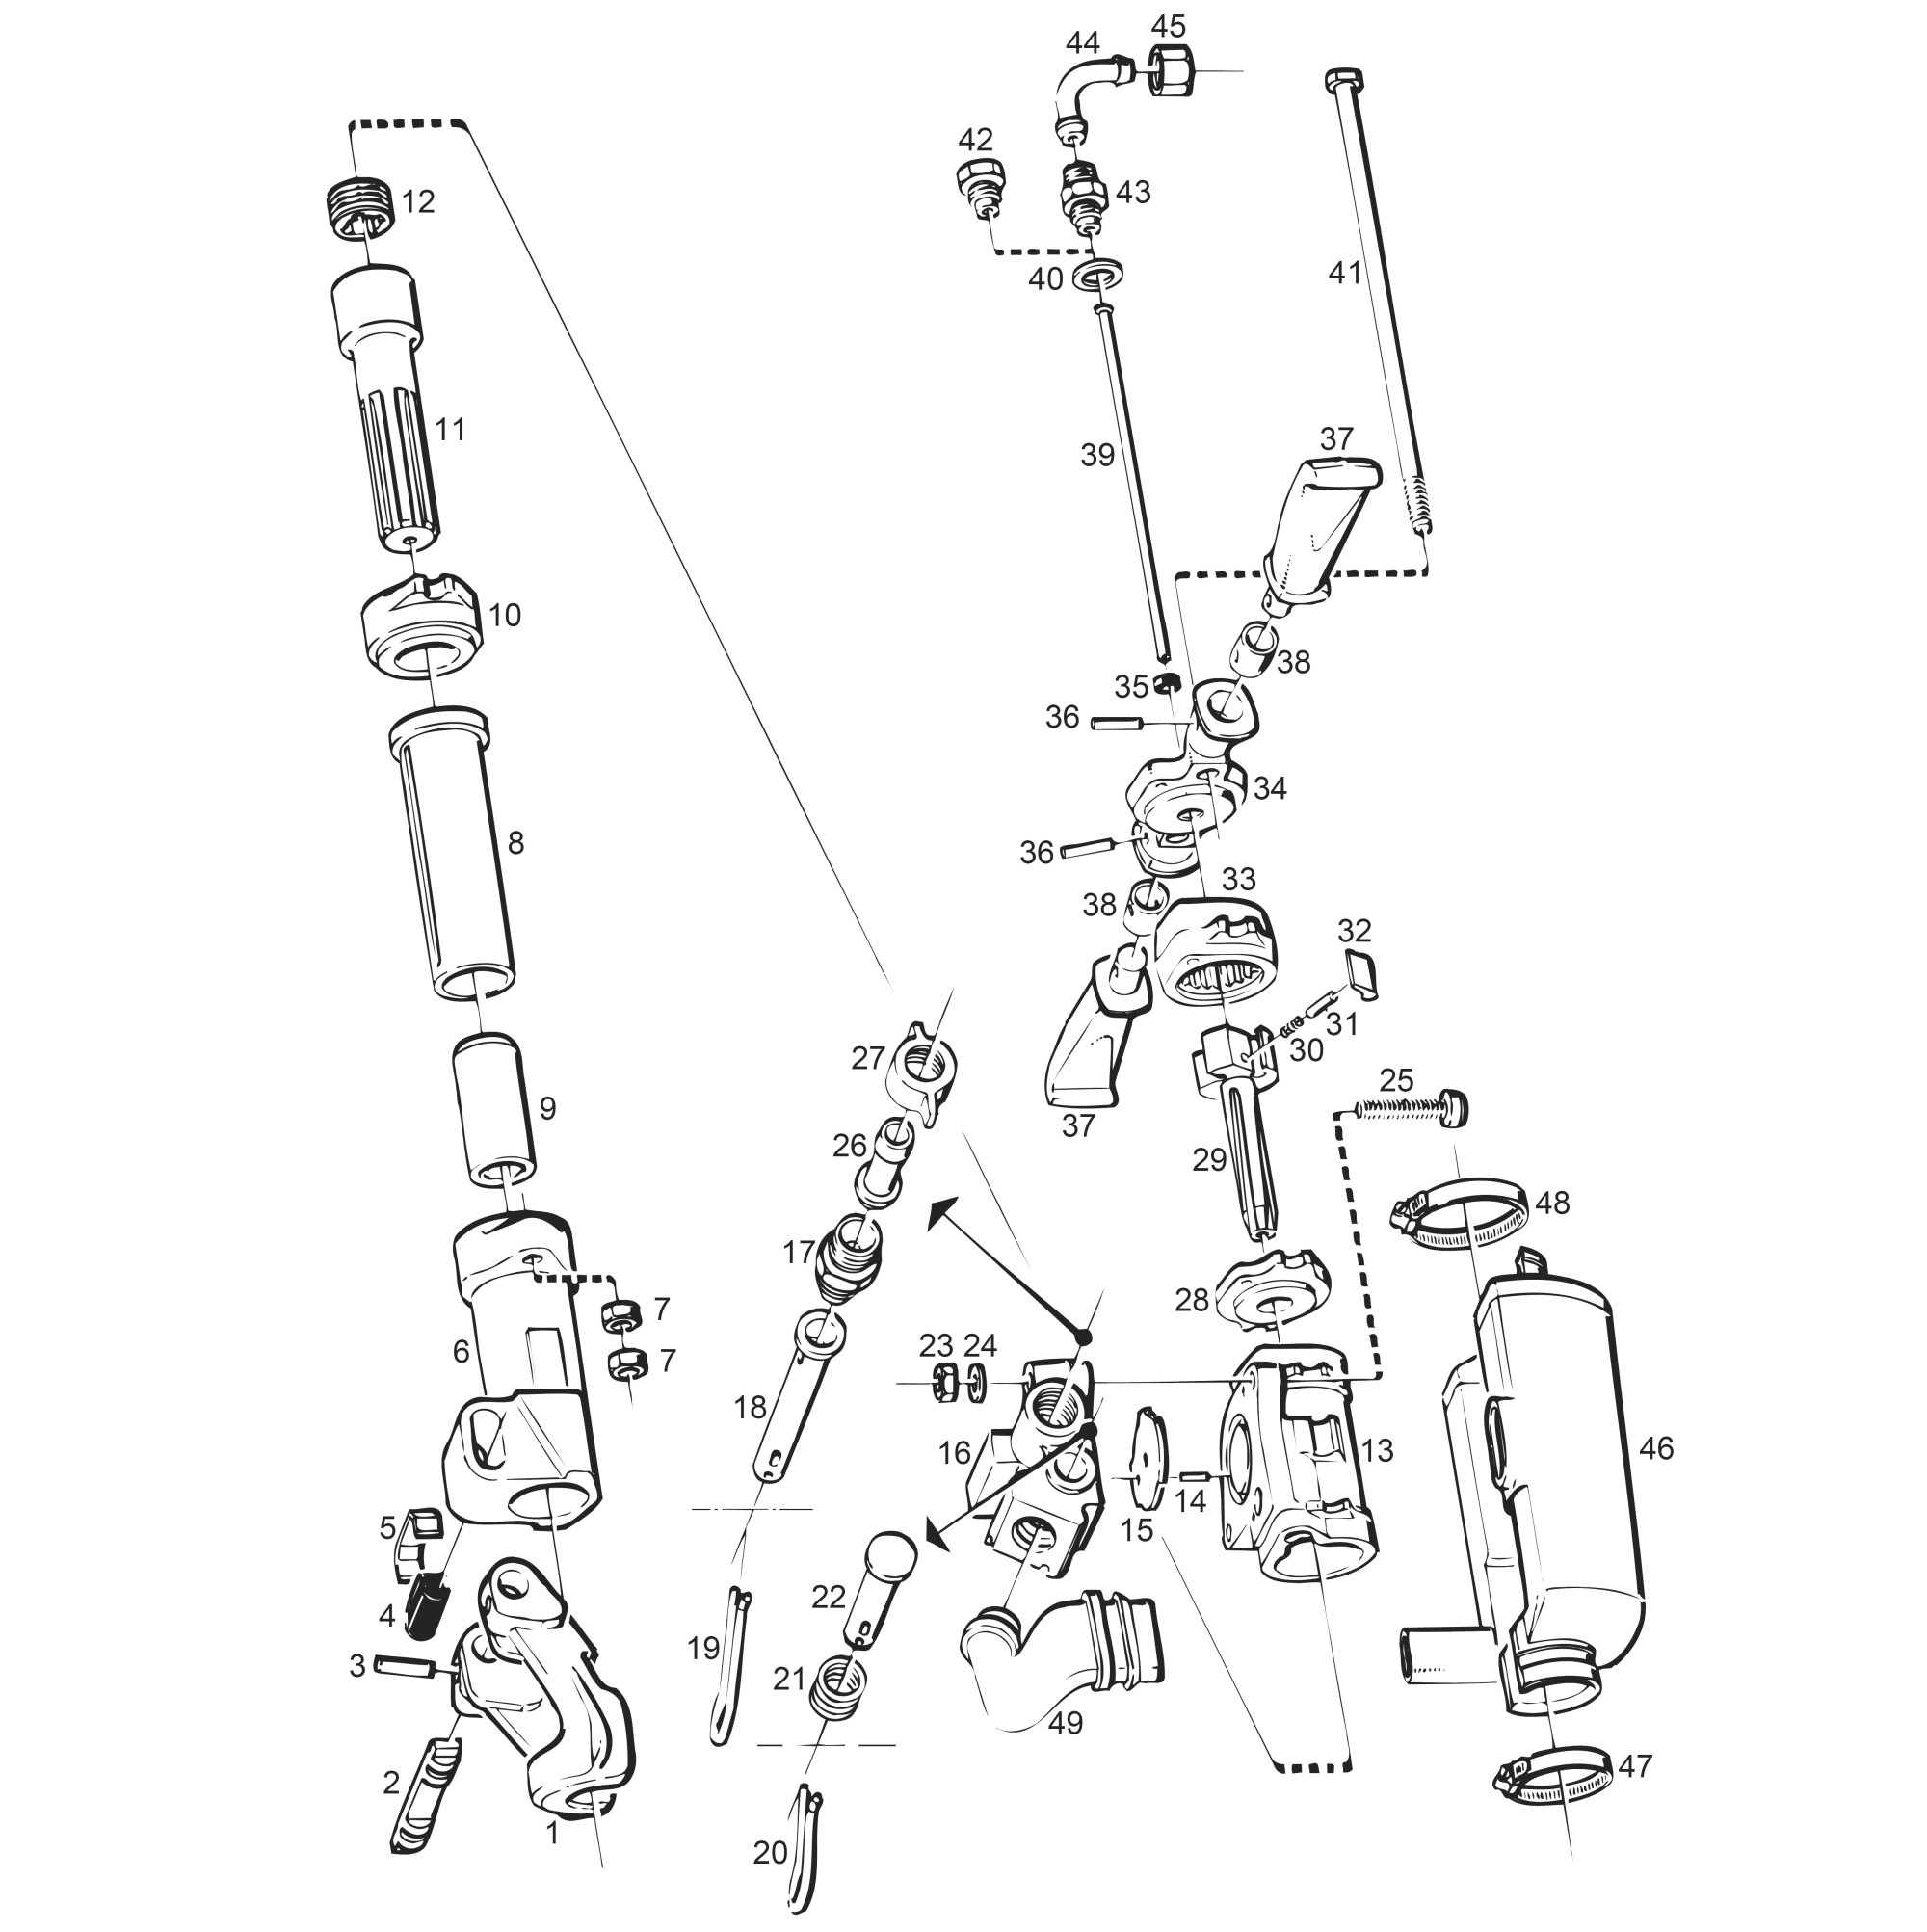 hight resolution of atlas copco gx11ff service manual toyota corolla factory electrical wiring diagrams service manual is working hard to be the easiest and most reliable